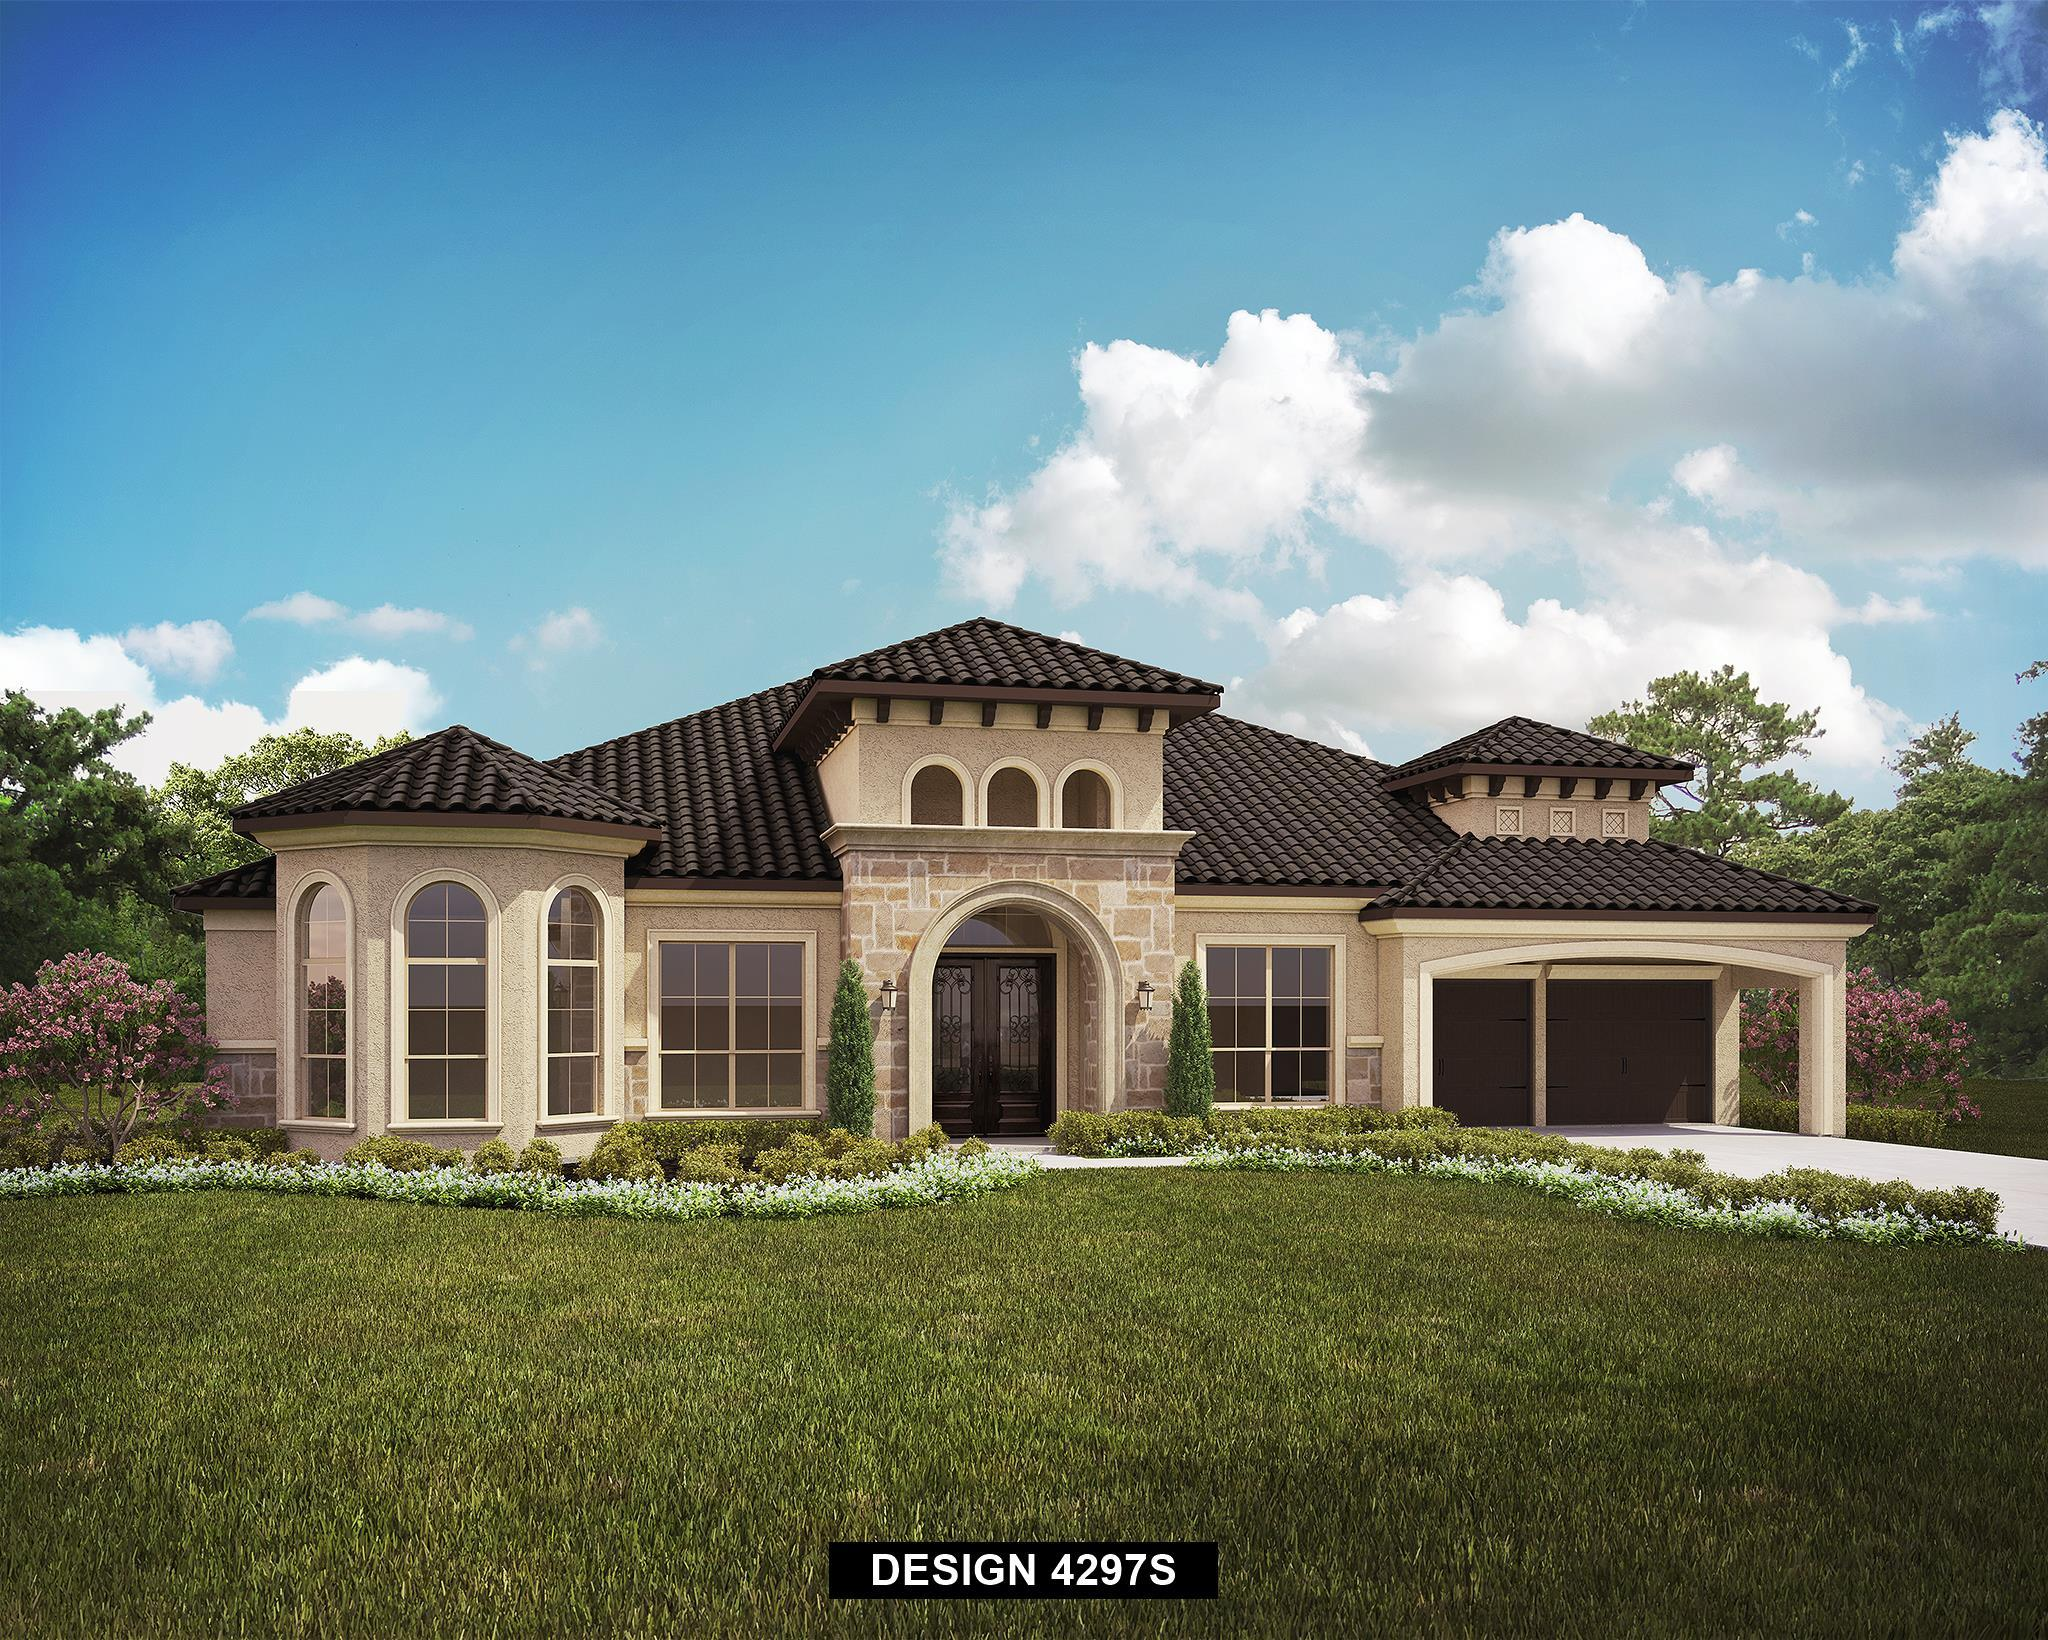 Single Family for Sale at Vintage Oaks - 4297s 581 Vale Court New Braunfels, Texas 78132 United States